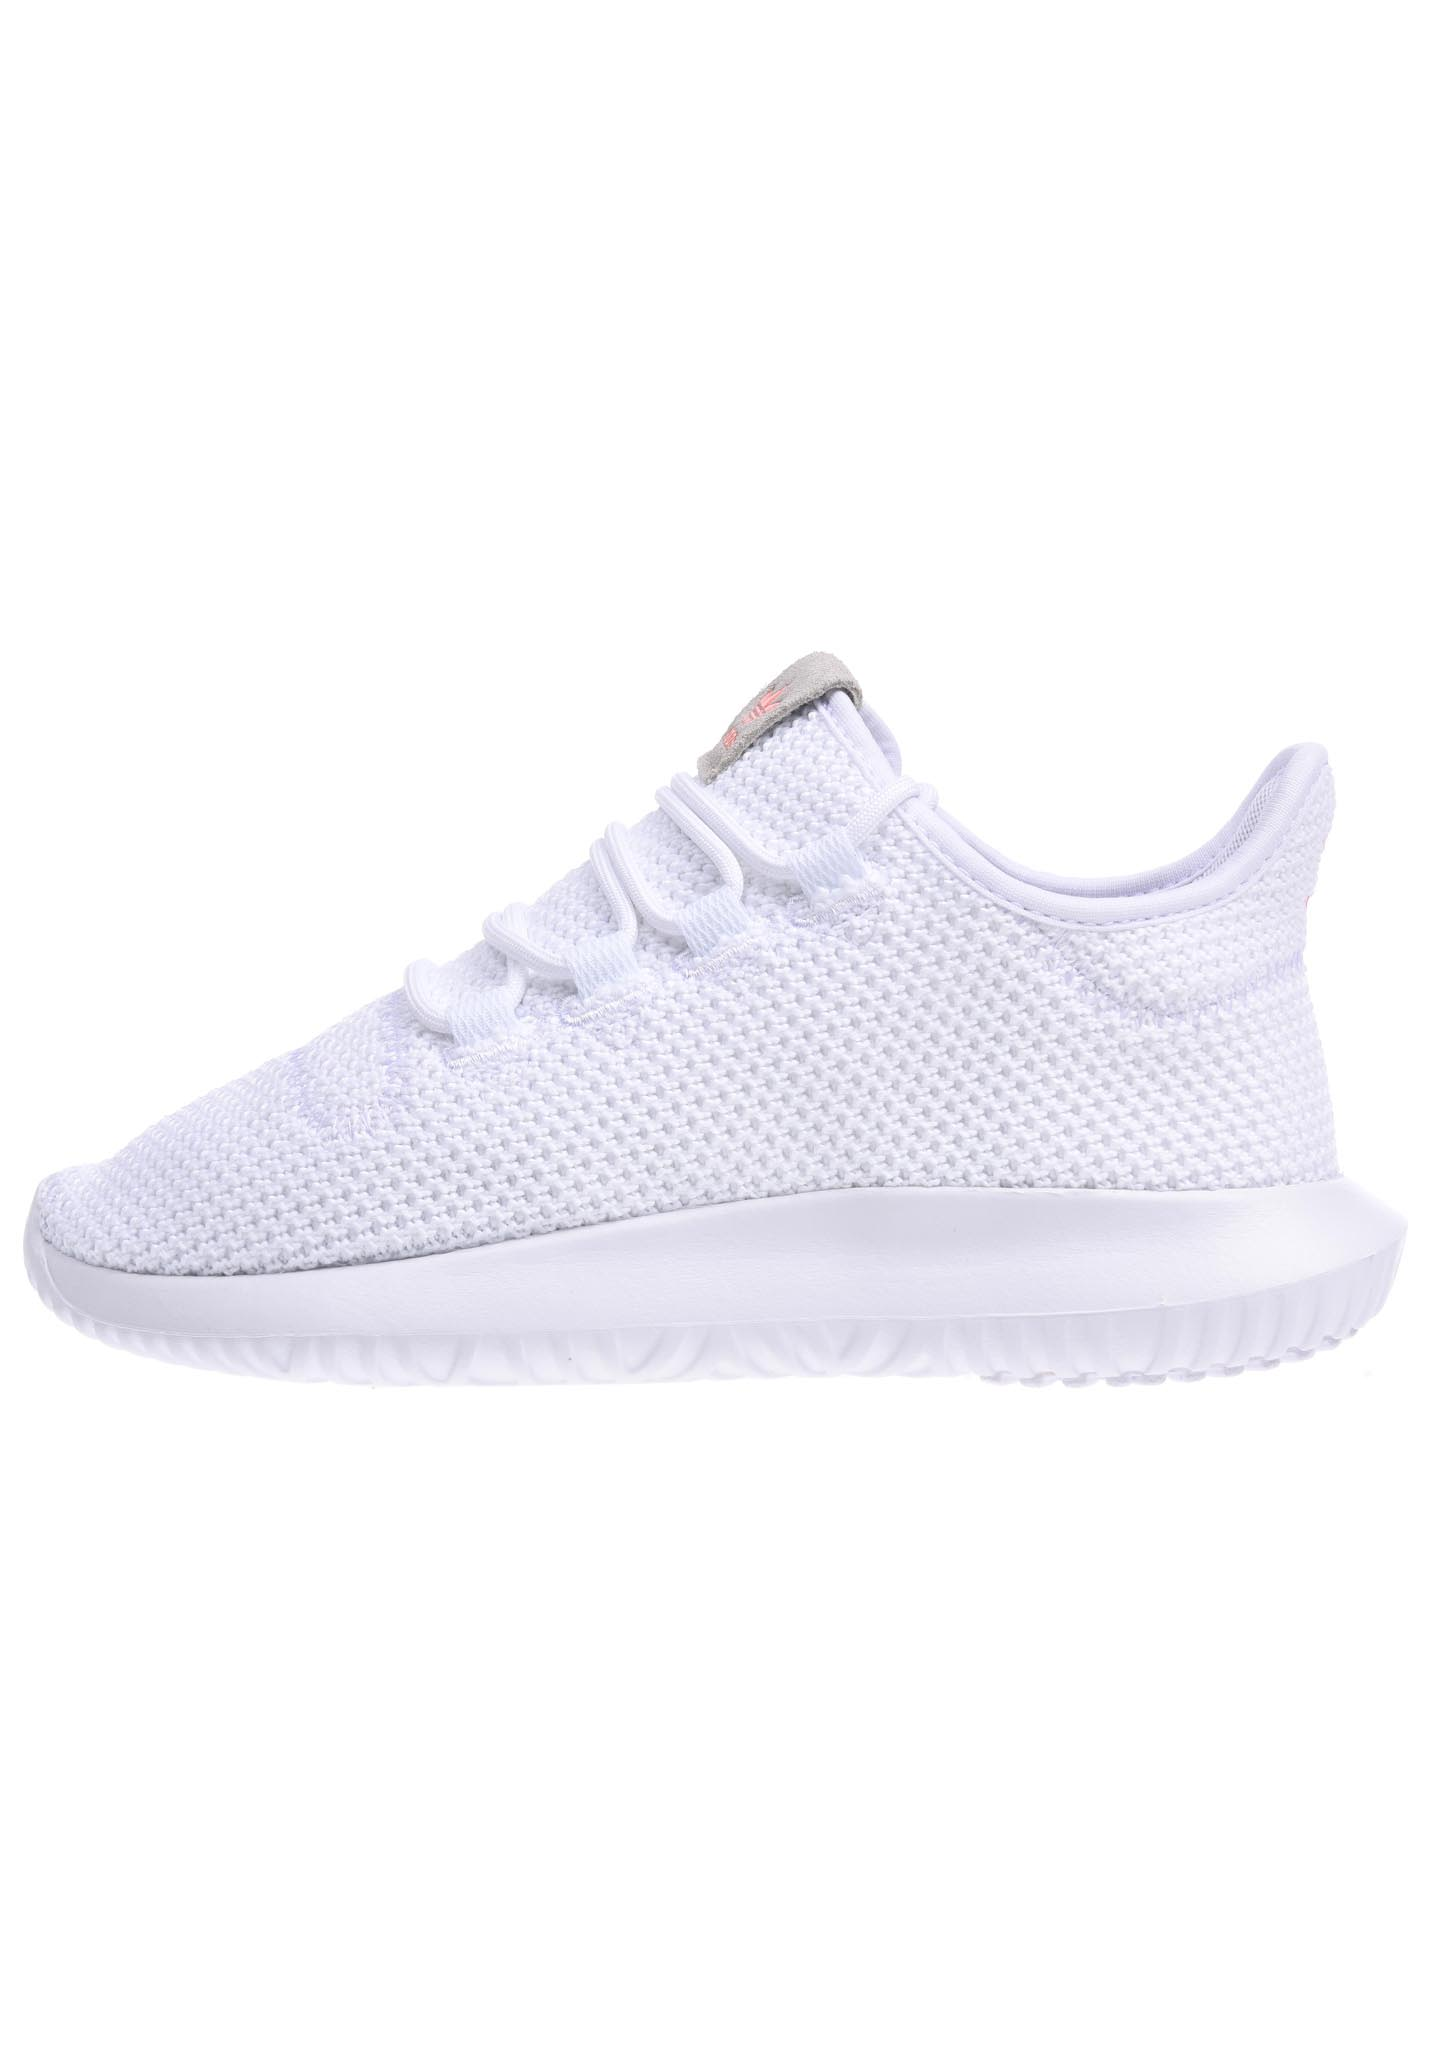 bcf50a131a4 ADIDAS ORIGINALS Tubular Shadow - Sneakers for Women - White - Planet Sports